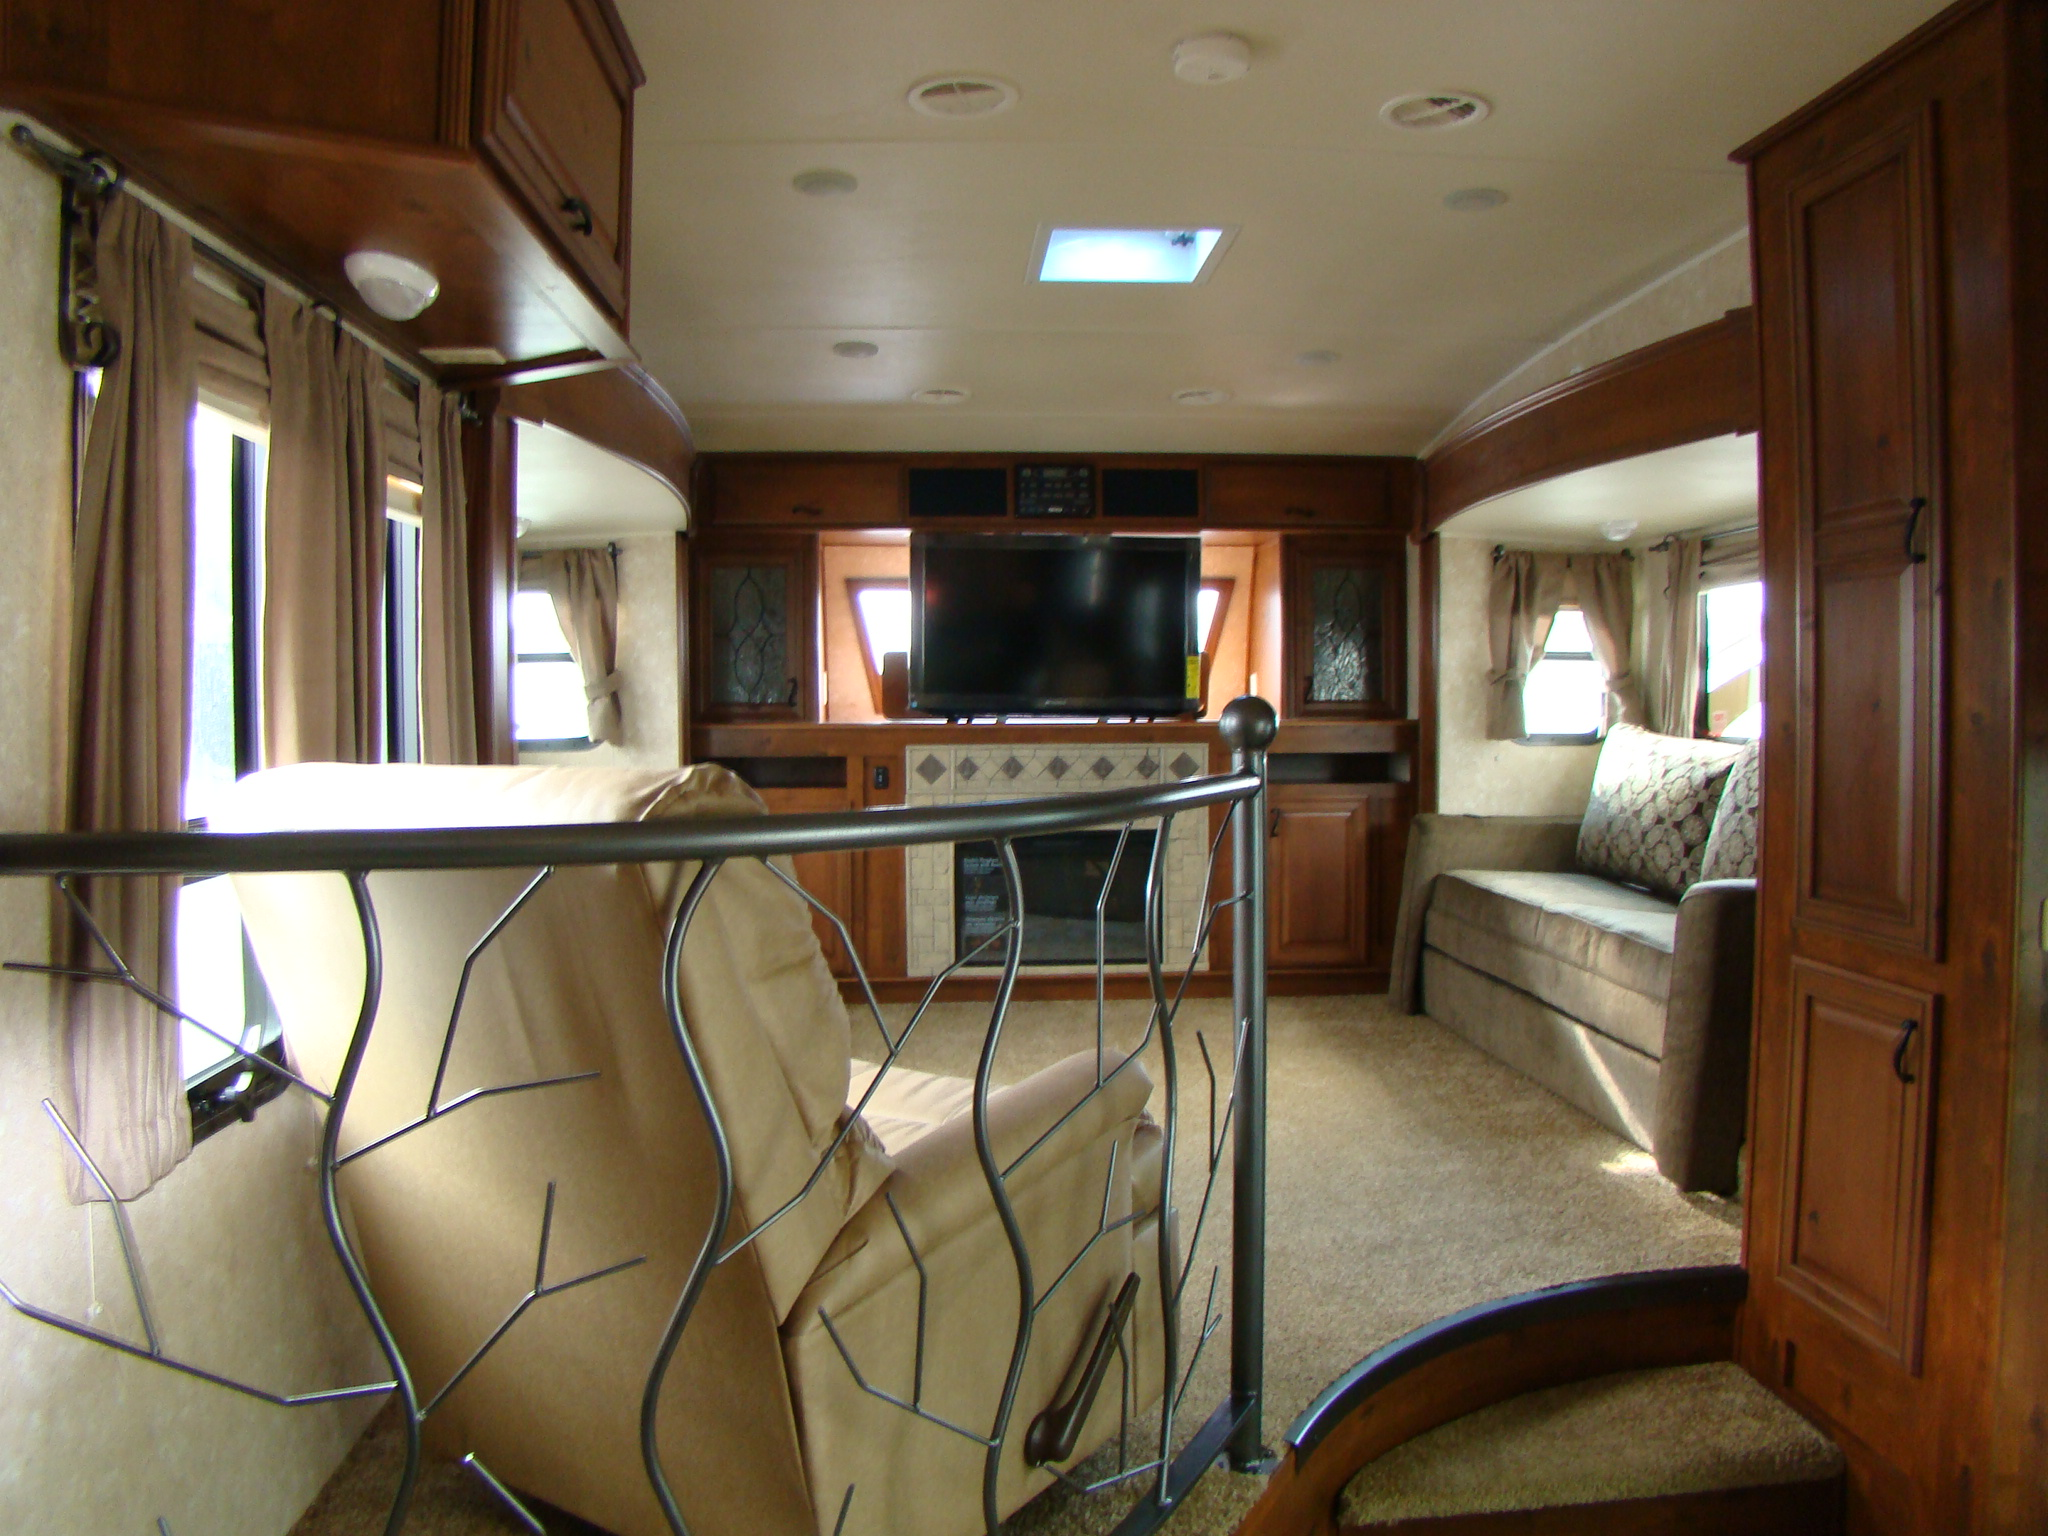 Captivating Rv Dealers Pennsylvania, Lerch RV, Rv Dealers, Rv Dealers York PA, Rv. Just  Like Home, Spacious Front Living Room.